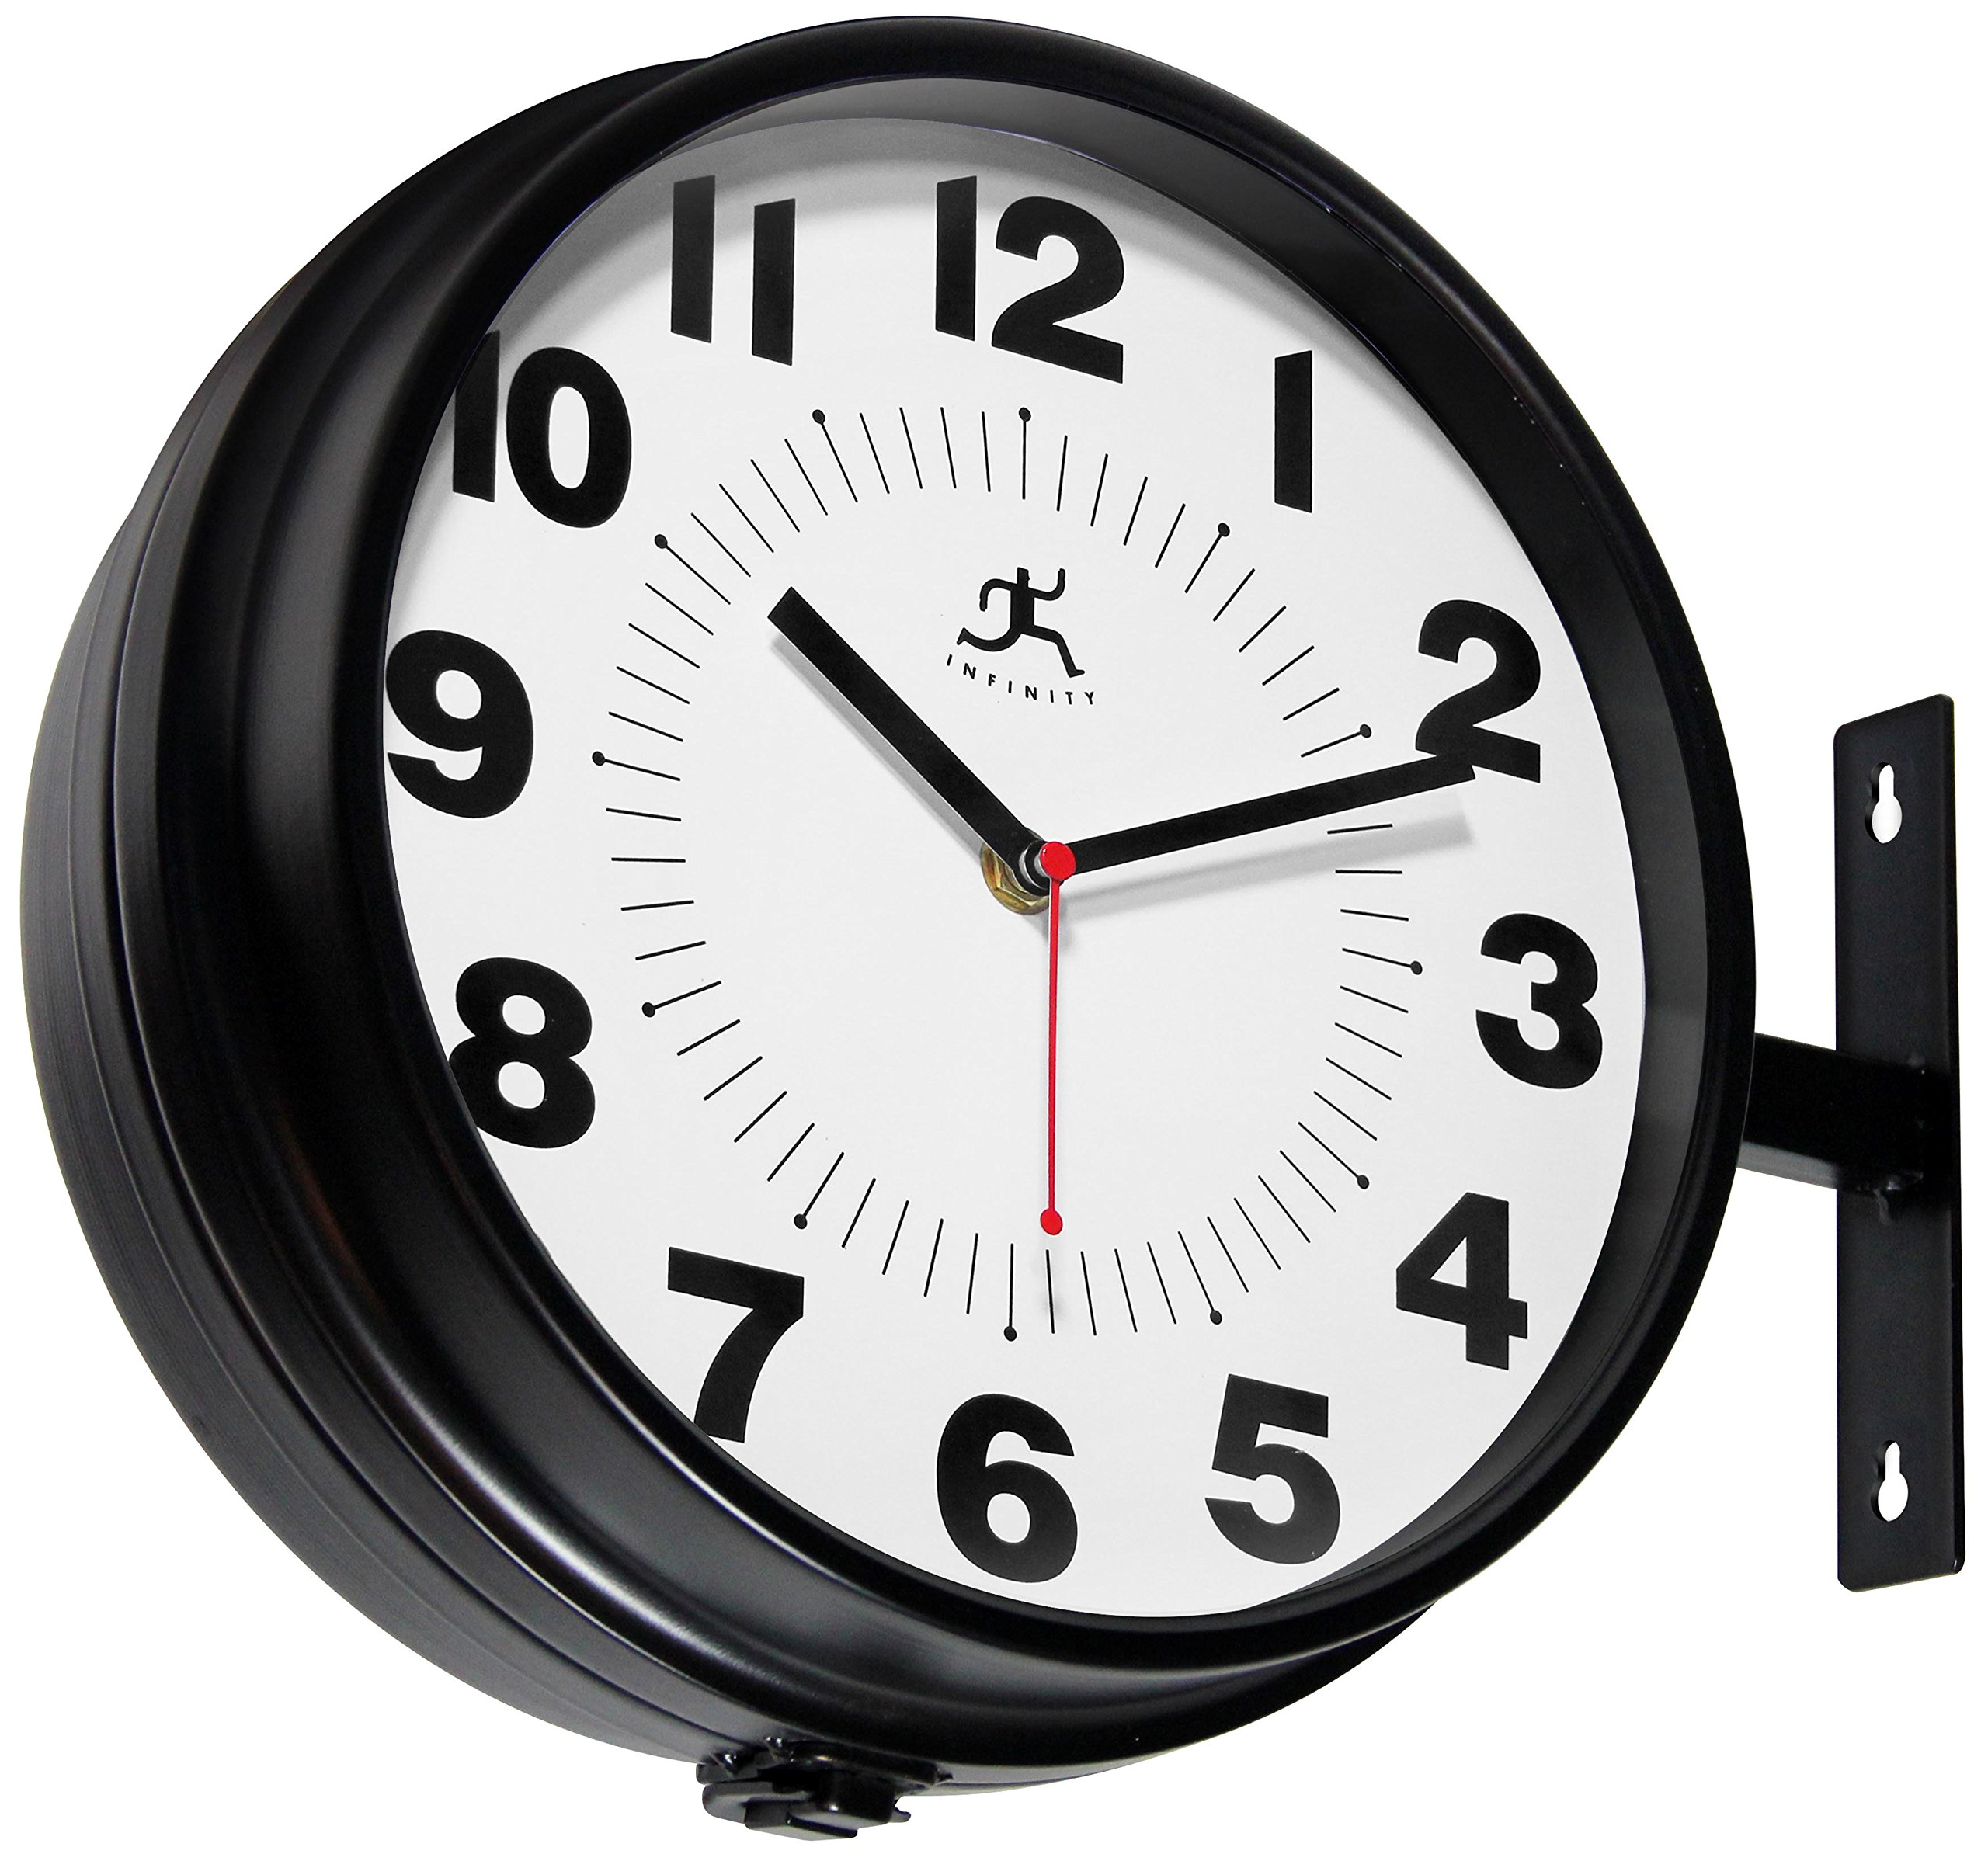 Infinity Instruments Hallway Clock, Black - 11Round, 13with Hanging bracket Adjustable dials for wall or Ceiling mounting Uses 2 AA batteries (not included) - wall-clocks, living-room-decor, living-room - 91ZTLHLDkLL -